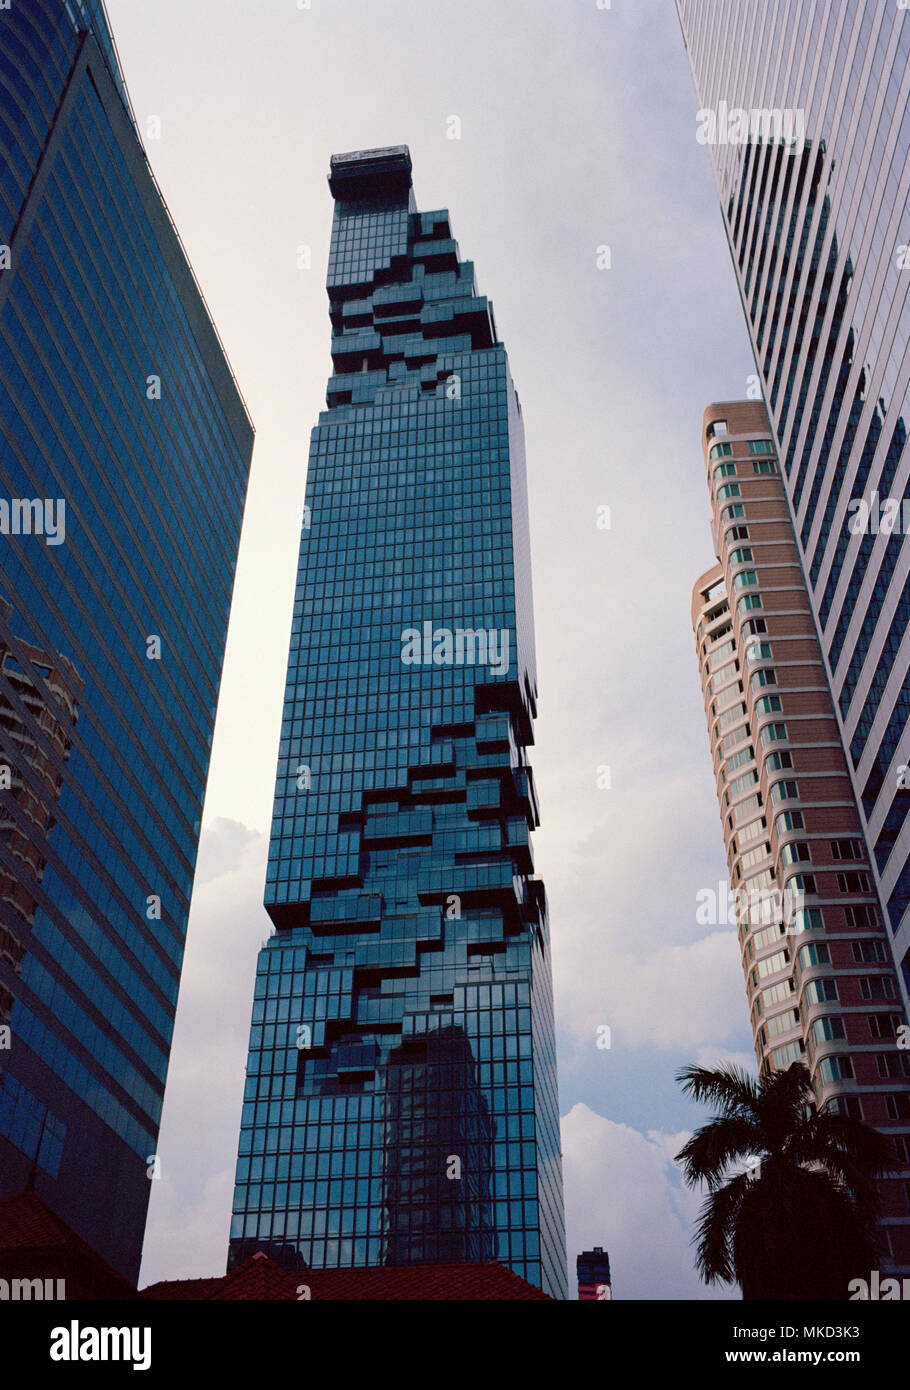 Bangkok Building Corporate Modern Architecture Buildings In